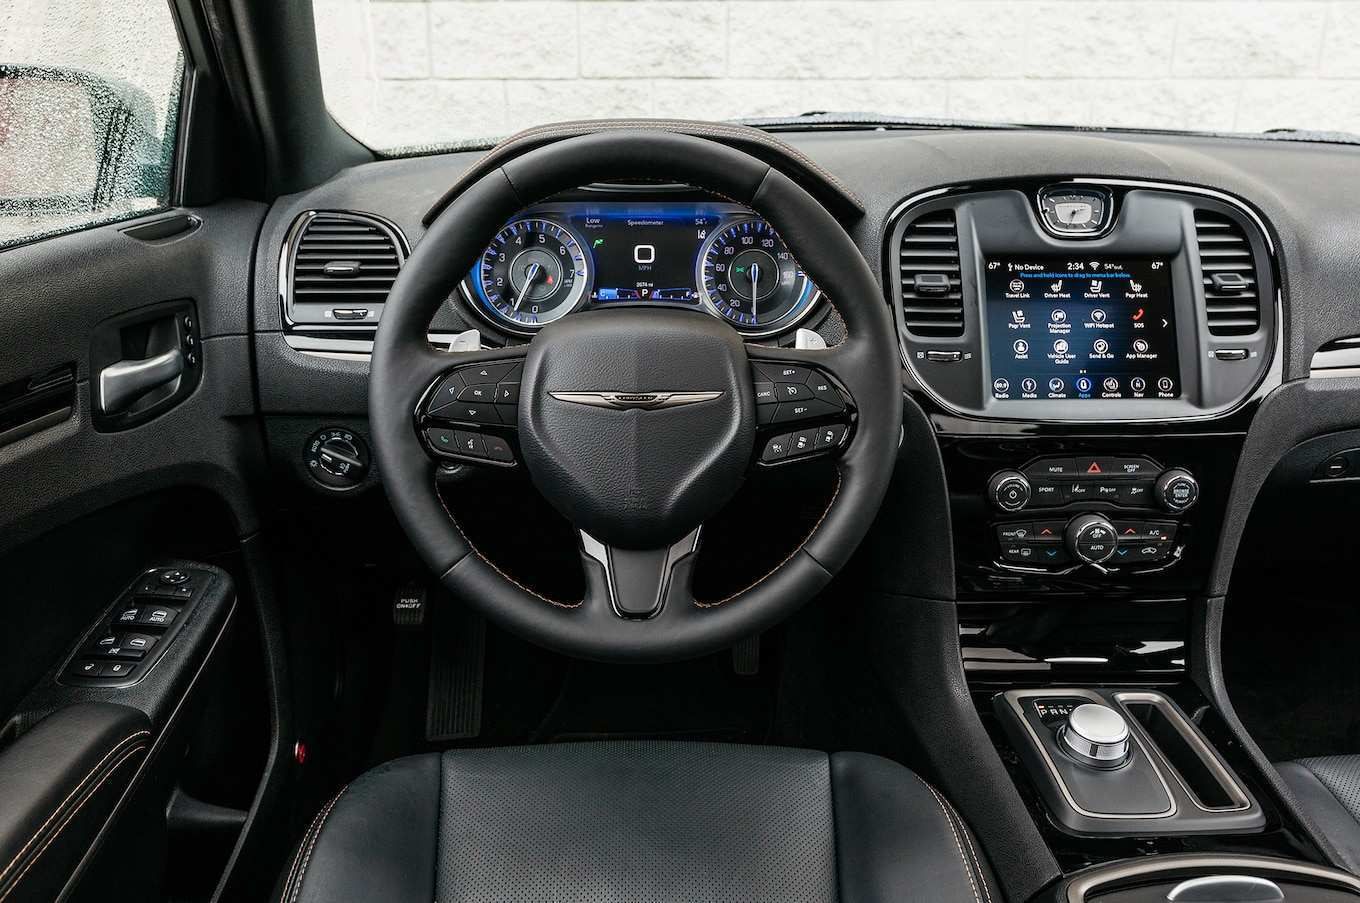 71 A 2019 Chrysler 300 Interior New Model And Performance